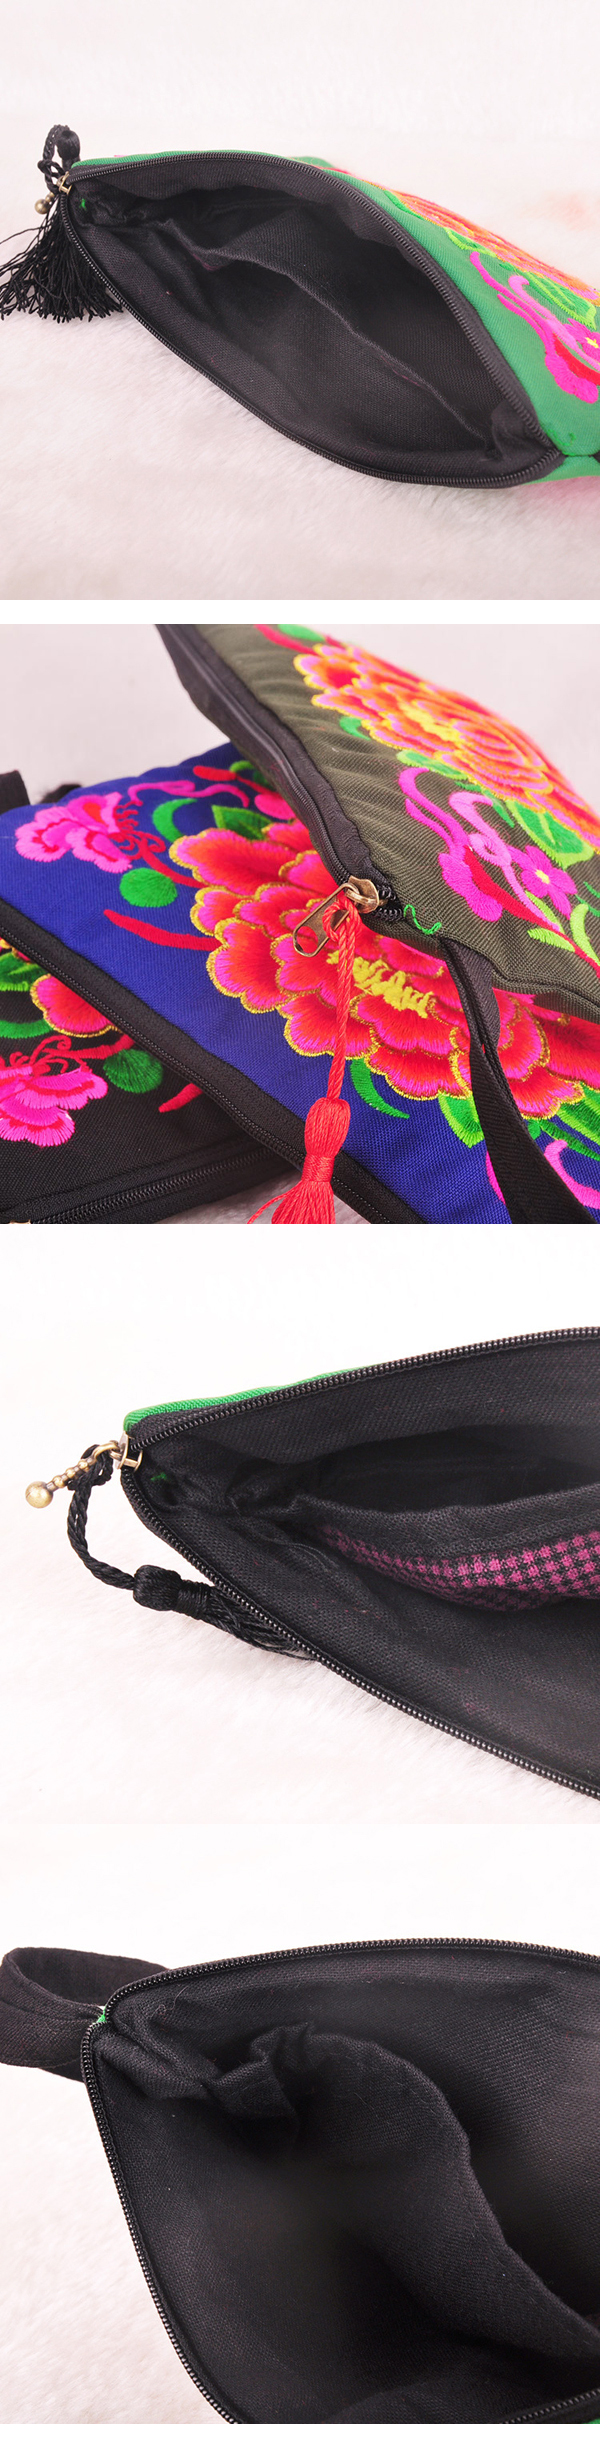 National Style Fashion Purse Embroidery Bag Clutch Bag